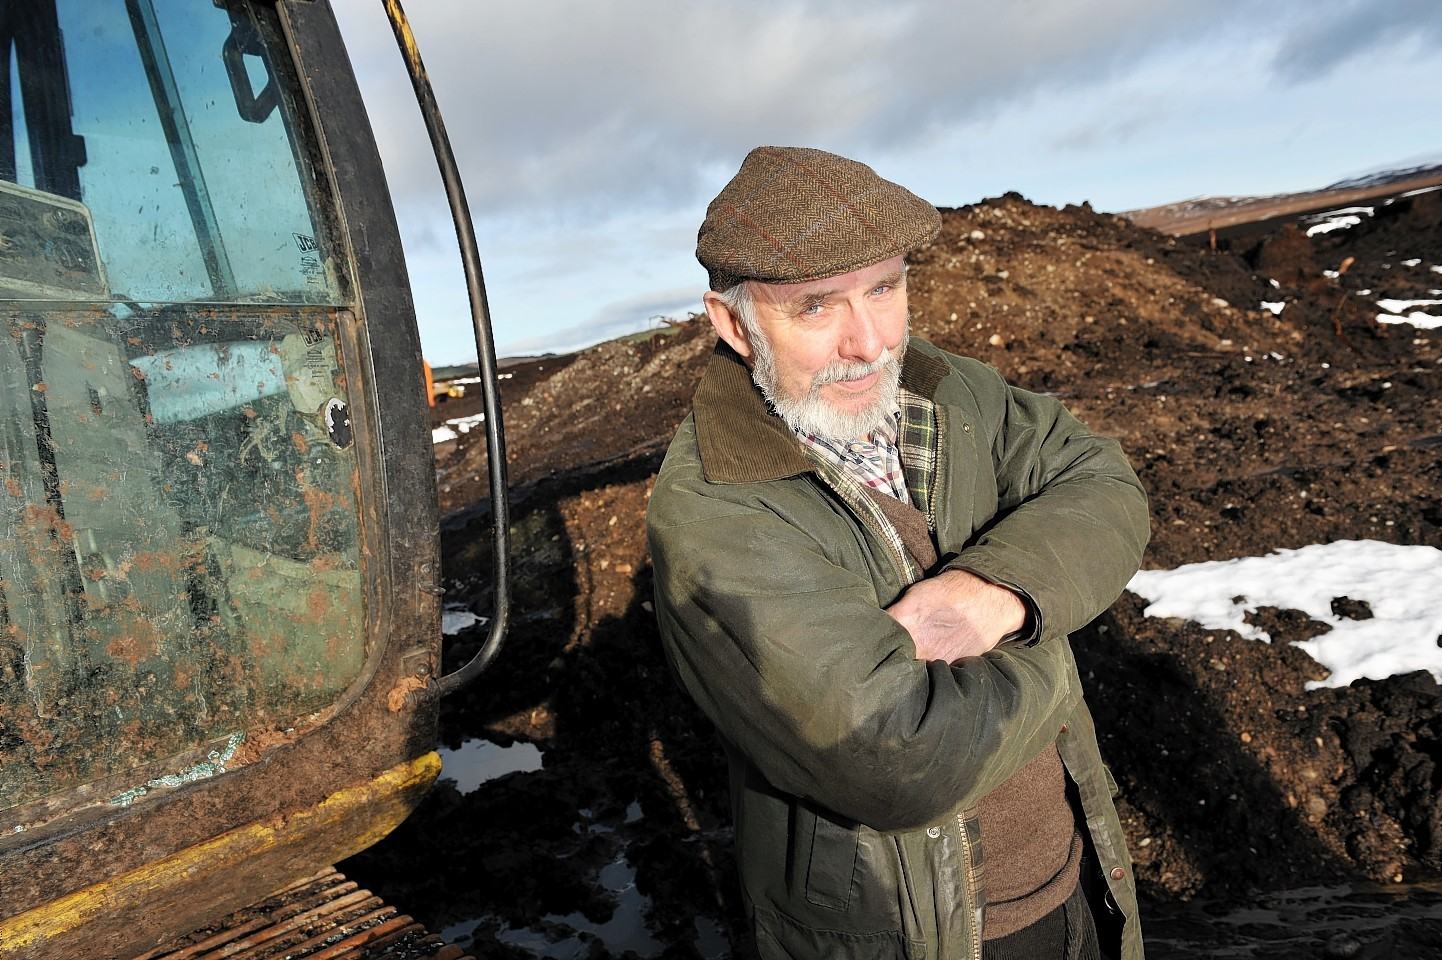 Brian MacGregor is frustrated by Highland Council's refusal to consider a tunnel as a potentially cheaper option as part of its Inverness bypass project.